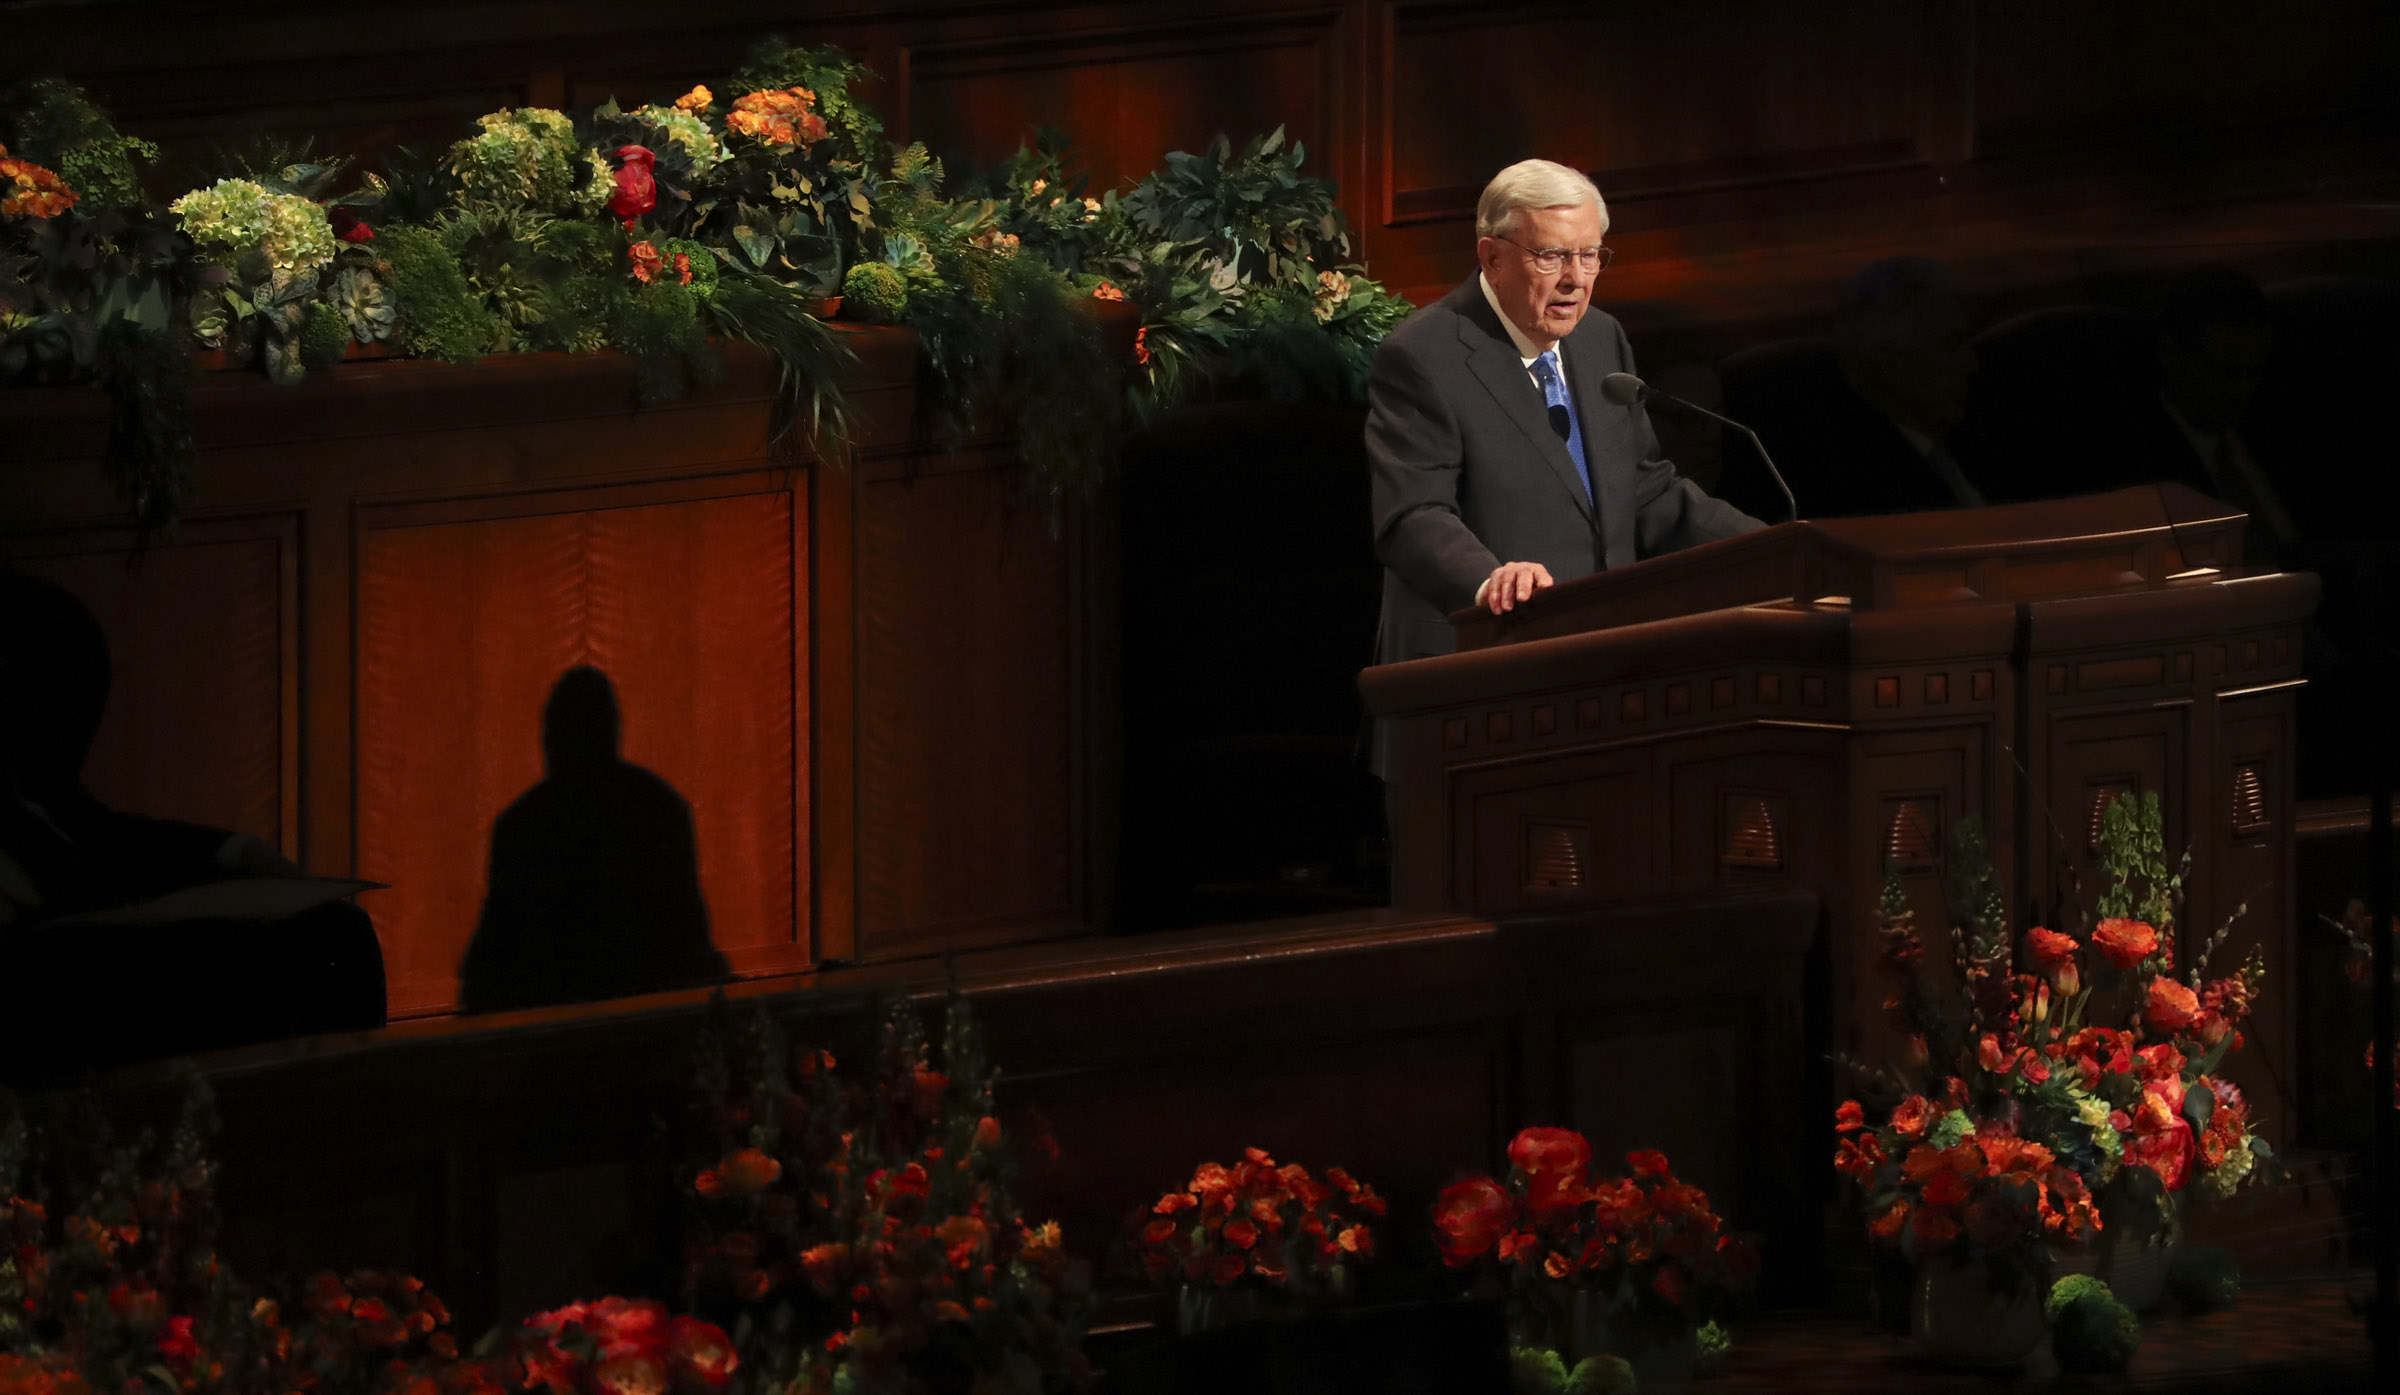 President M. Russell Ballard, acting president of the Quorum of the Twelve Apostles, speaks during the afternoon session of the 189th Annual General Conference of The Church of Jesus Christ of Latter-day Saints at the Conference Center in Salt Lake City on Saturday, April 6, 2019.